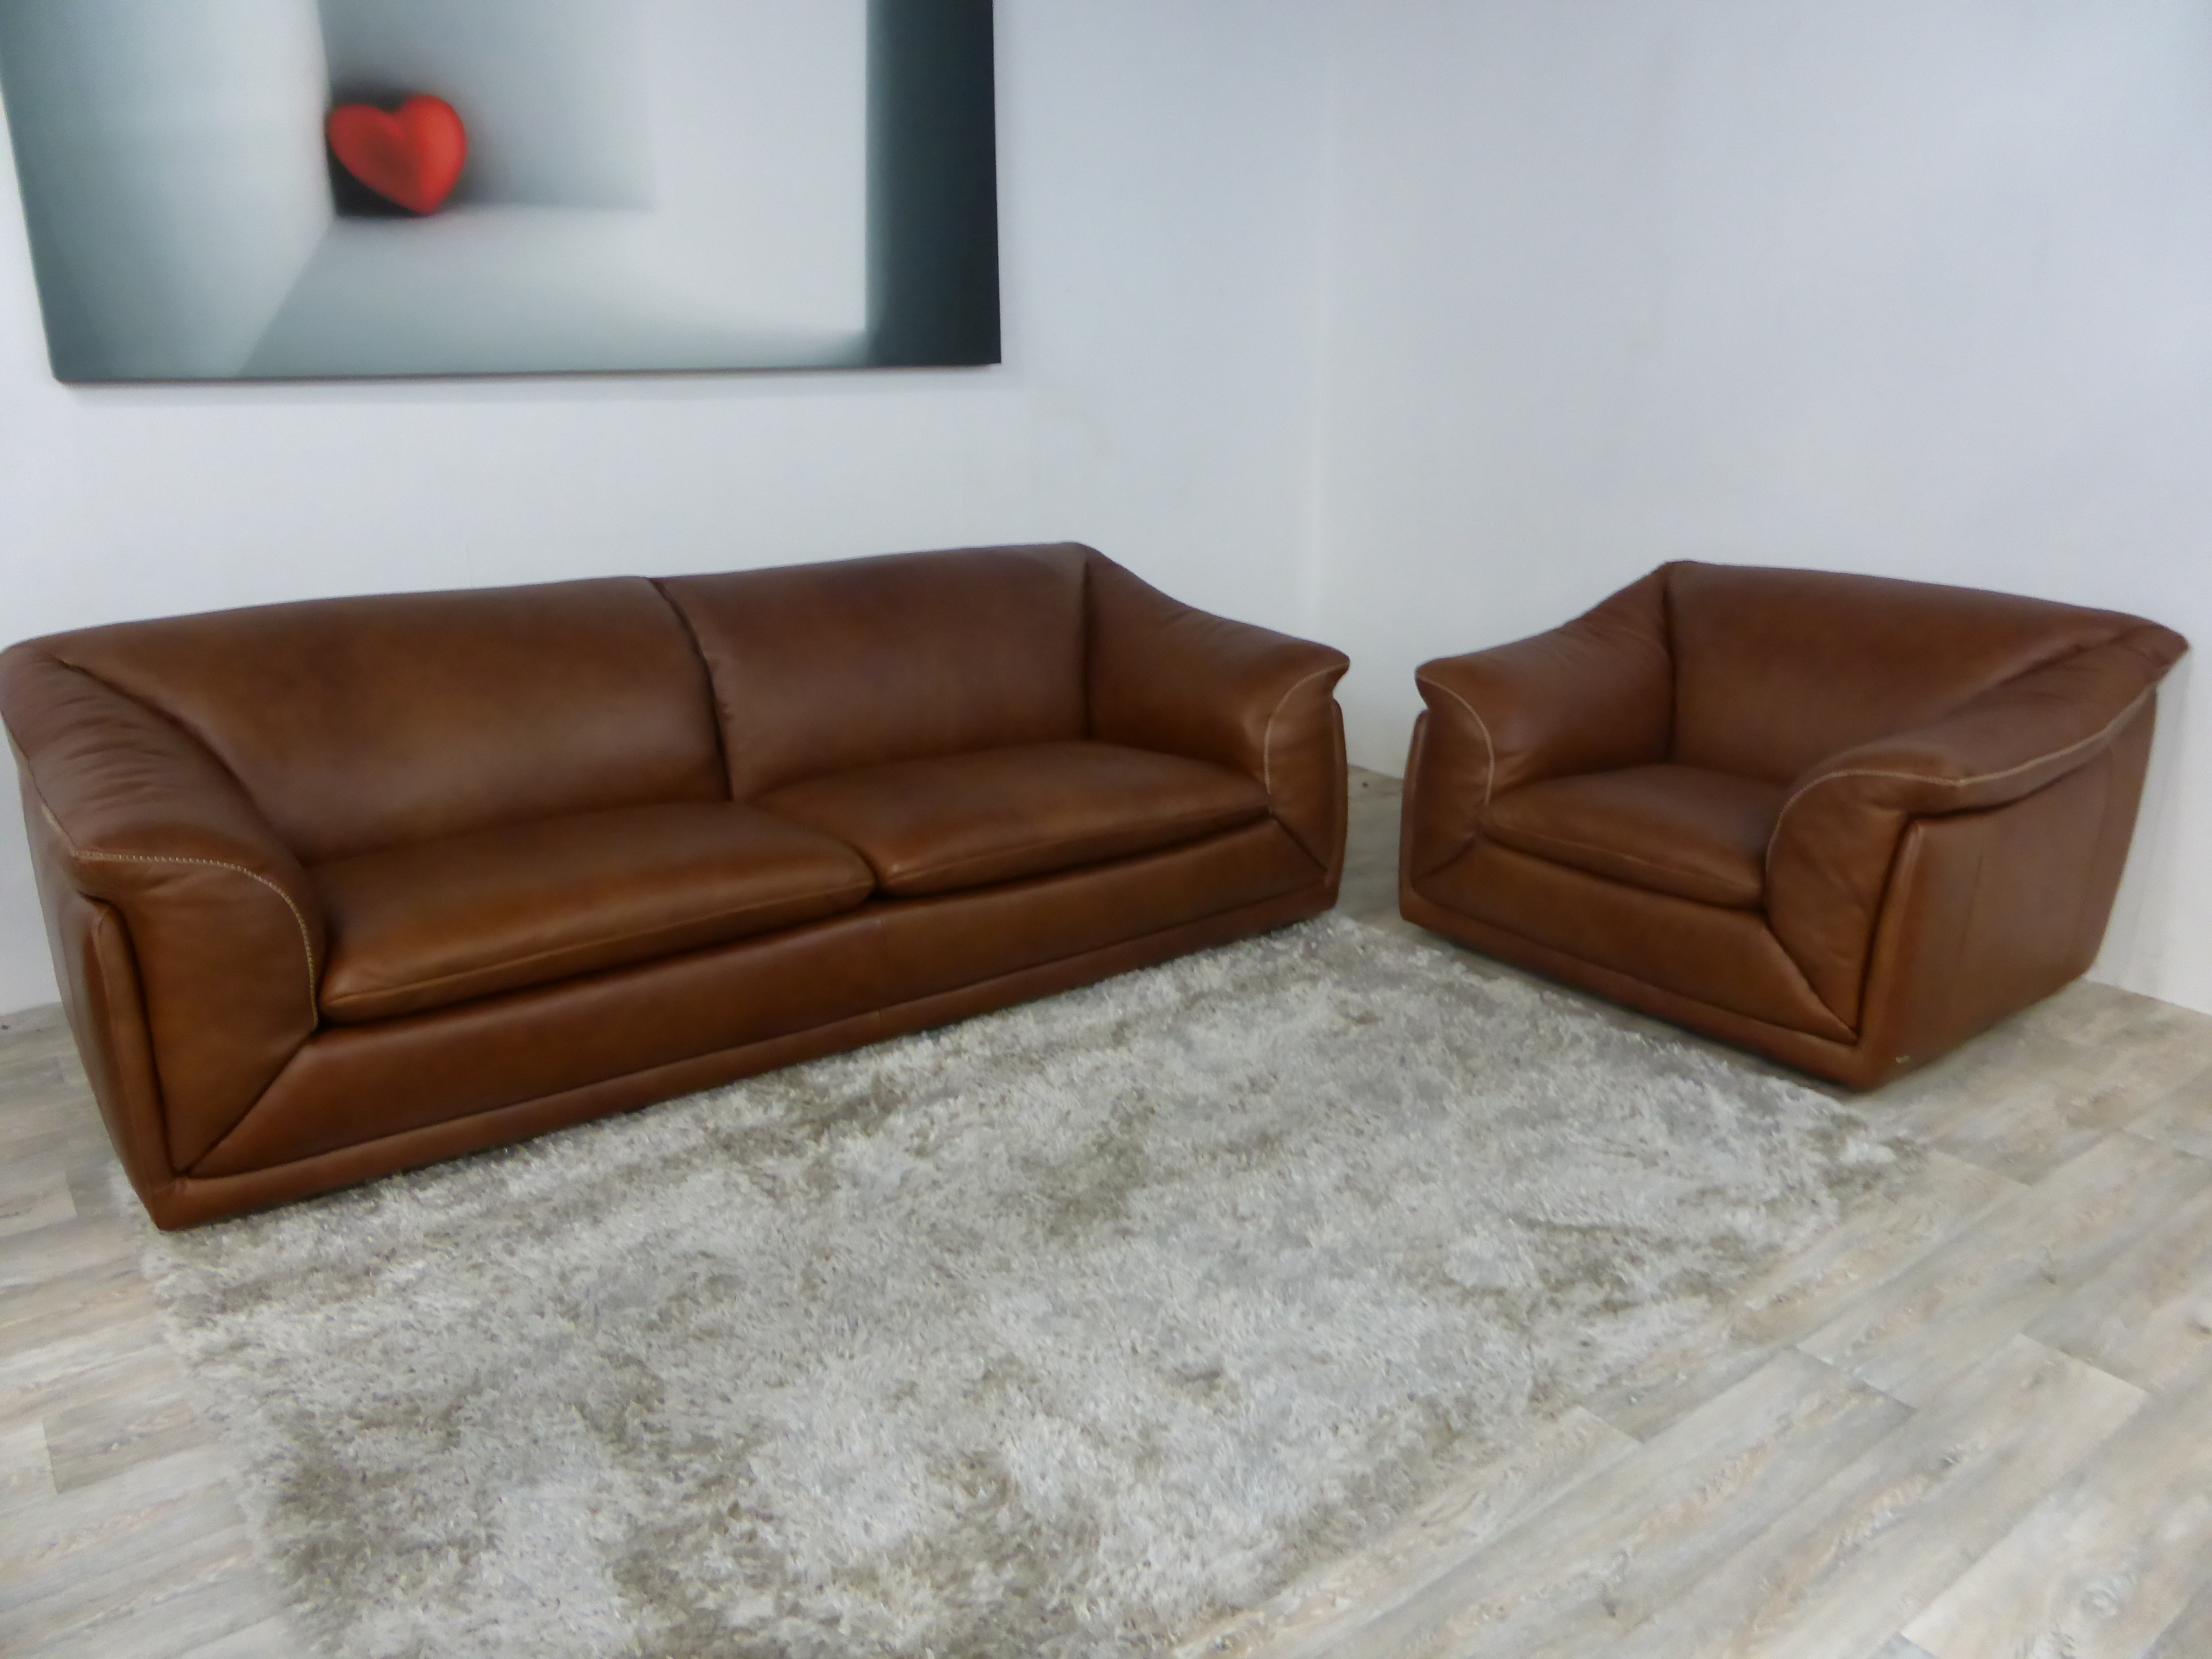 ciak sofa natuzzi bed parts how to know if it is genuine home design